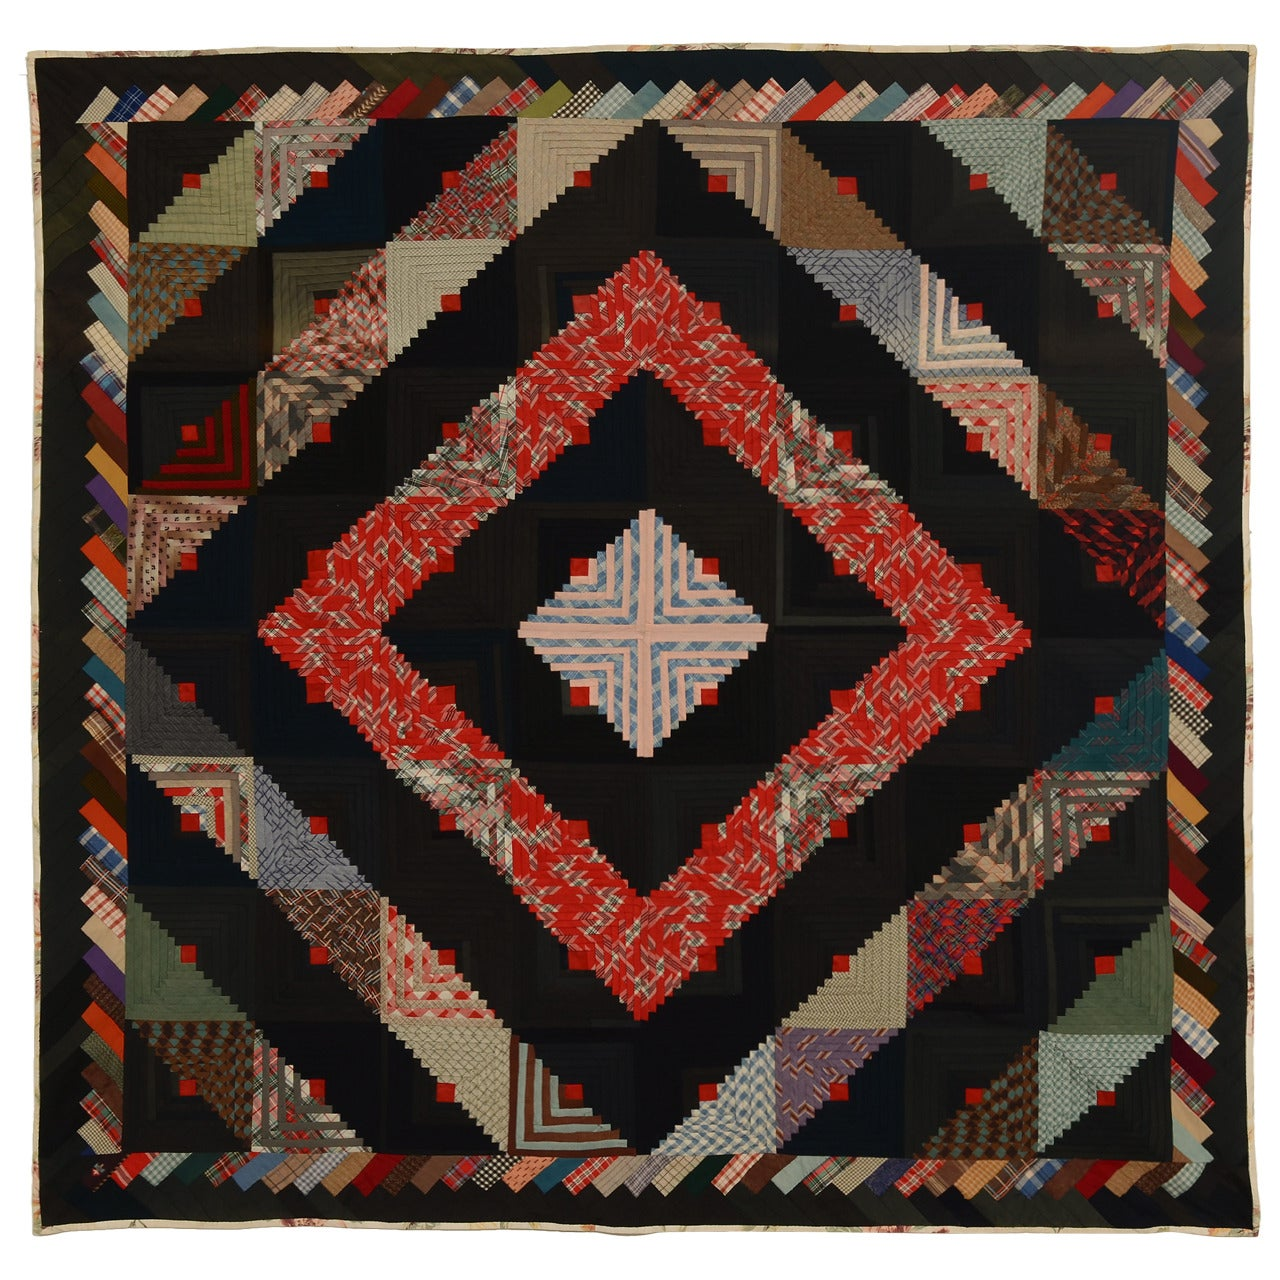 Barn Raising Log Cabin Quilt with Unusual Border